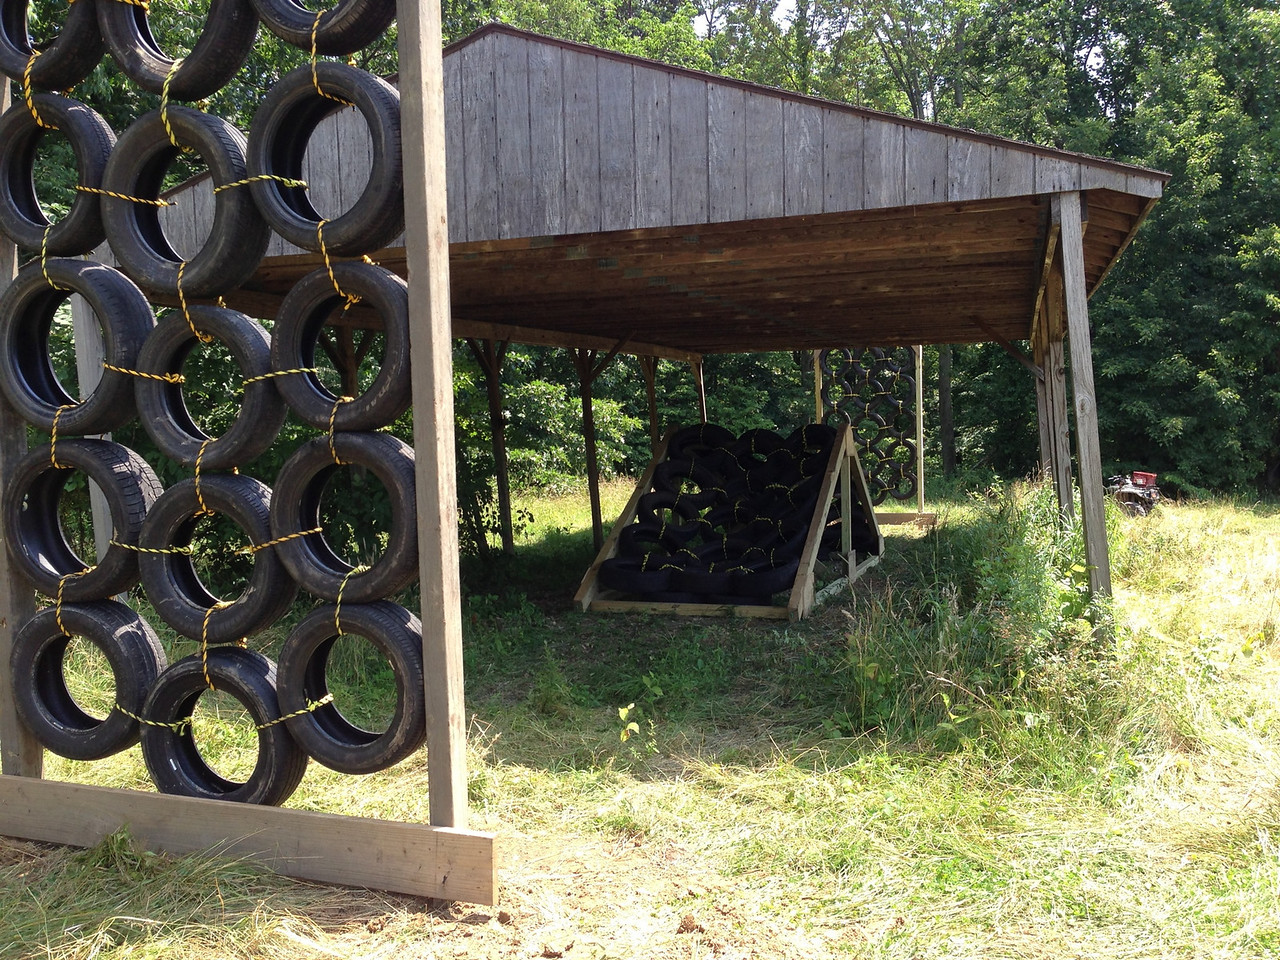 Tire Walls and A-Tire-Frame: pitching you side-to-side up and over the vertical walls and A-frame constructions. One mans trash is another mans treasure.